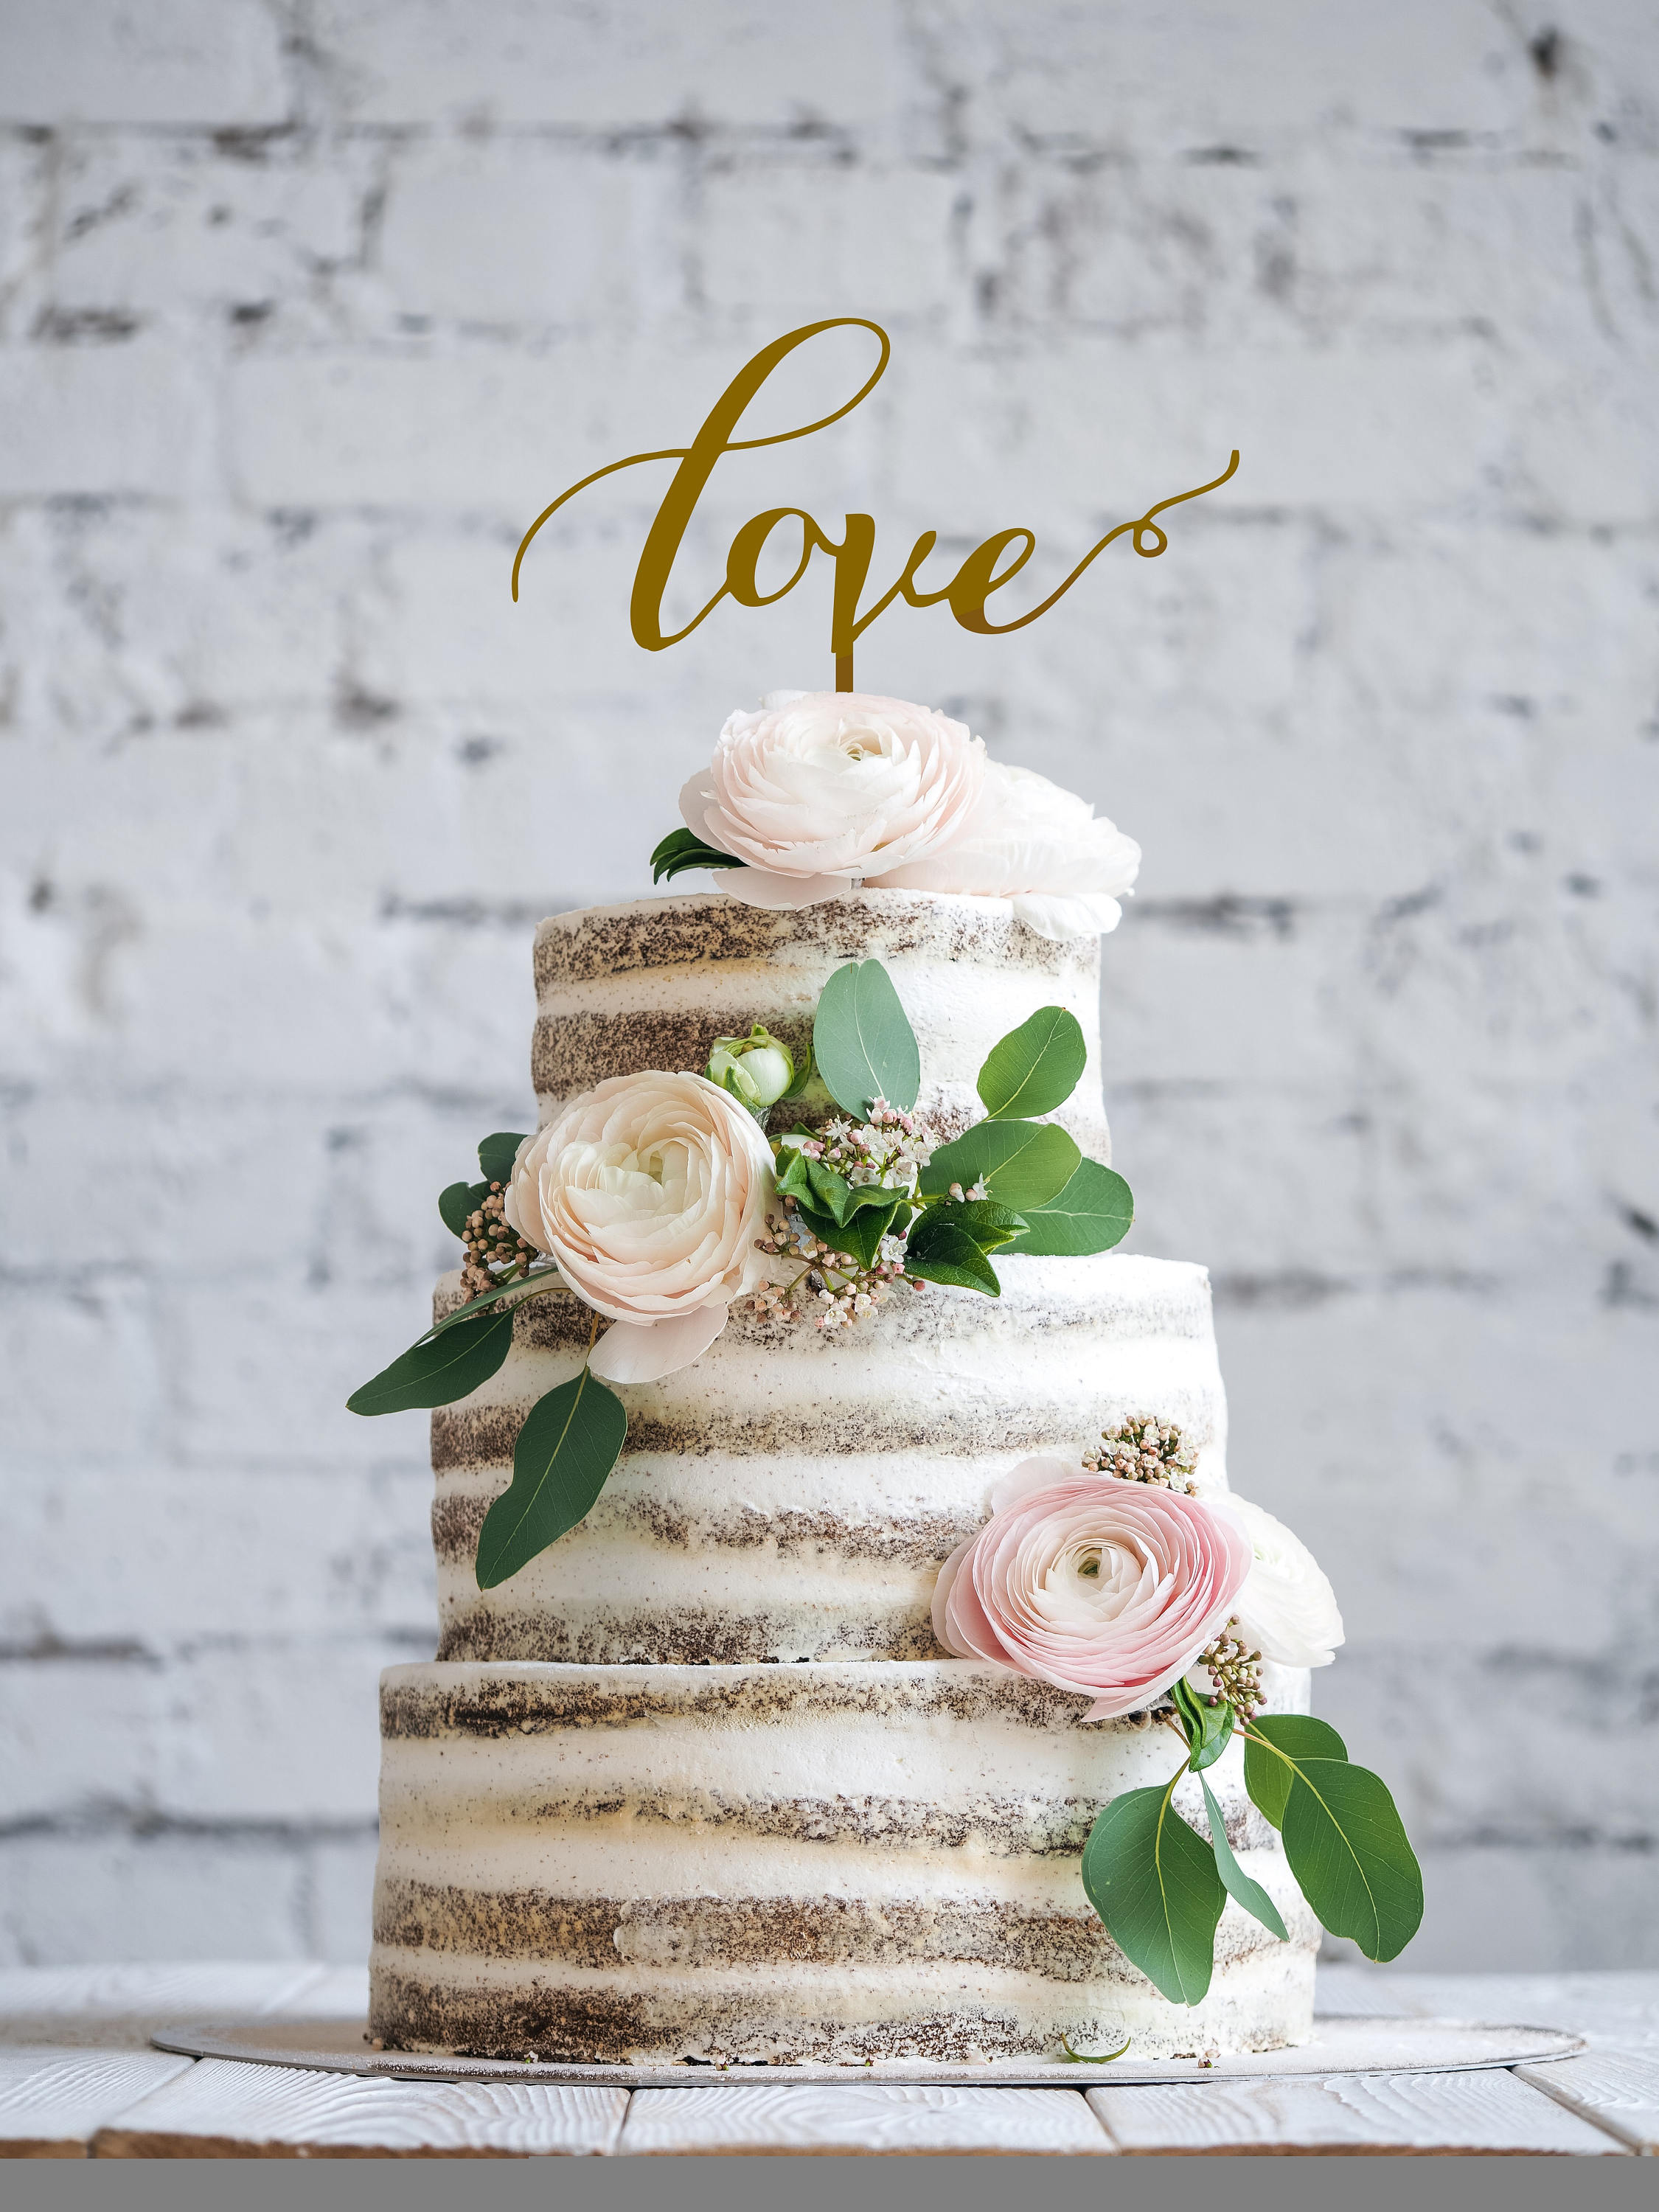 LOVE Wedding Cake Topper GOLD Cake Toppers for wedding